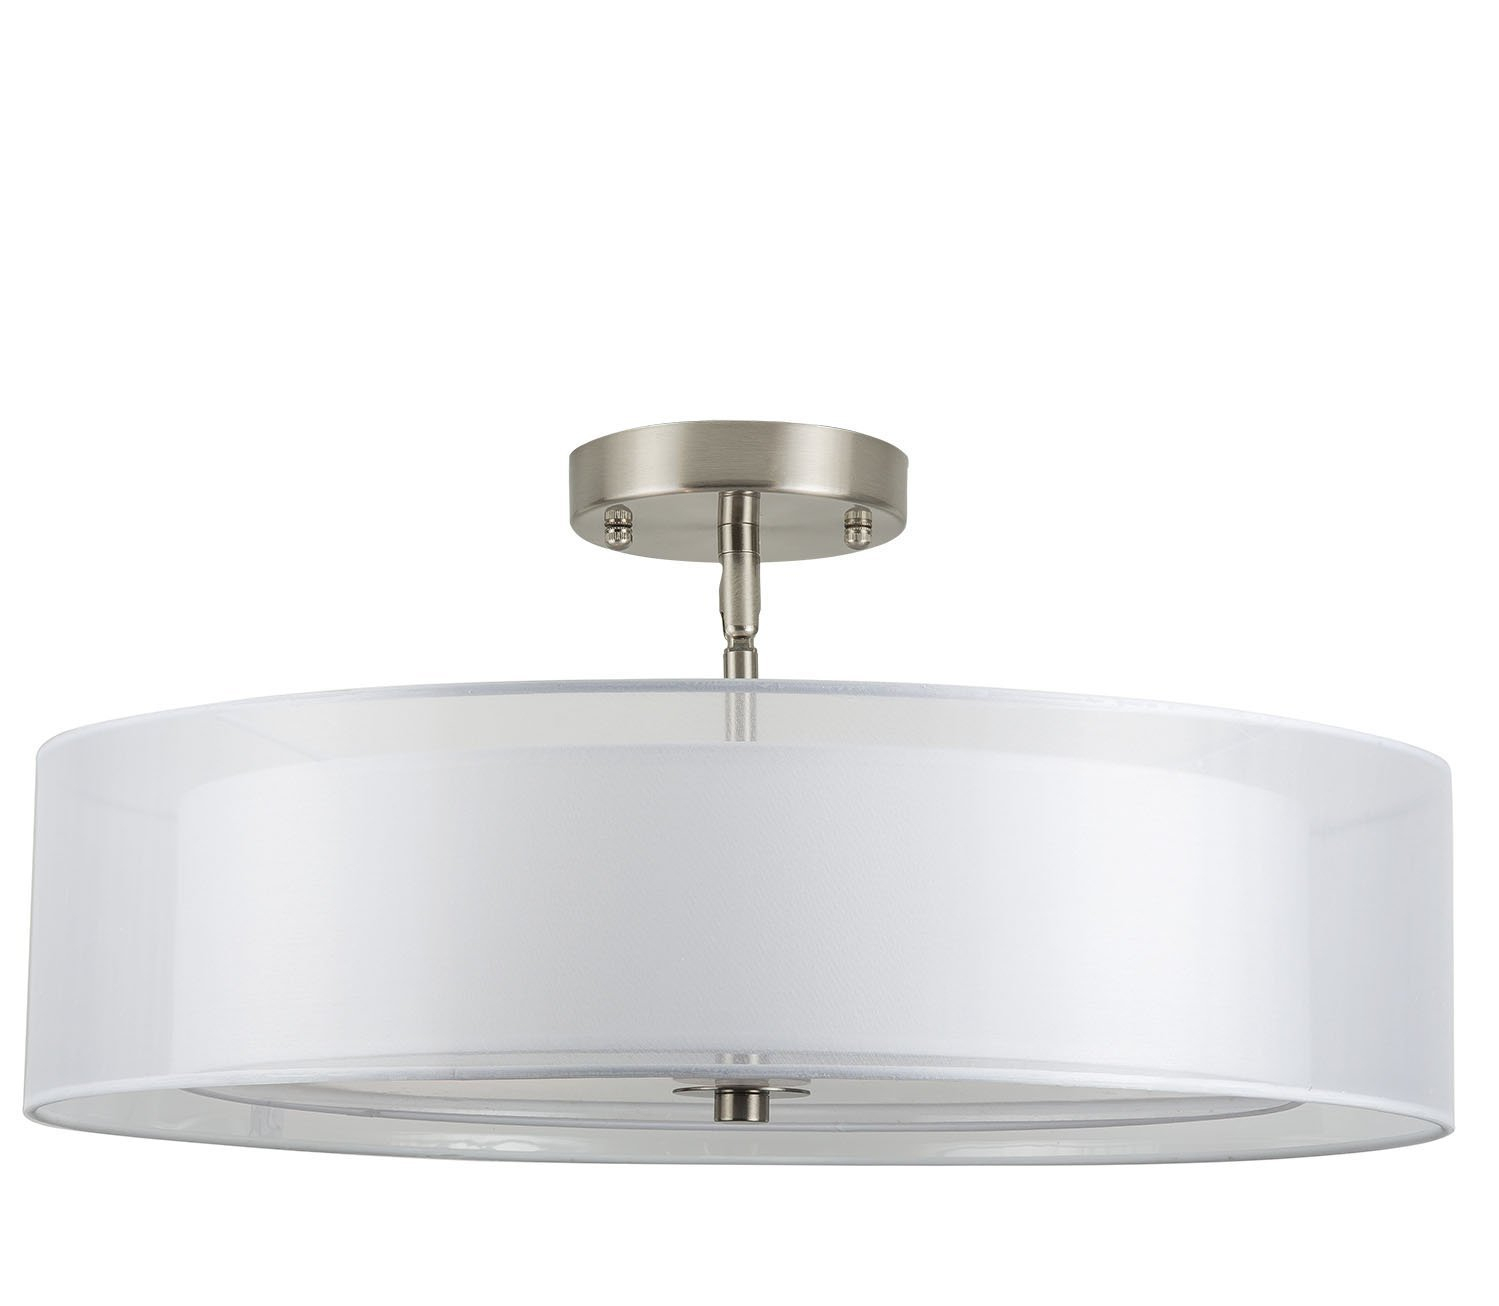 Modern & Contemporary Alina 5 Light Drum Pendant | Allmodern Pertaining To Alina 5 Light Drum Chandeliers (View 23 of 30)